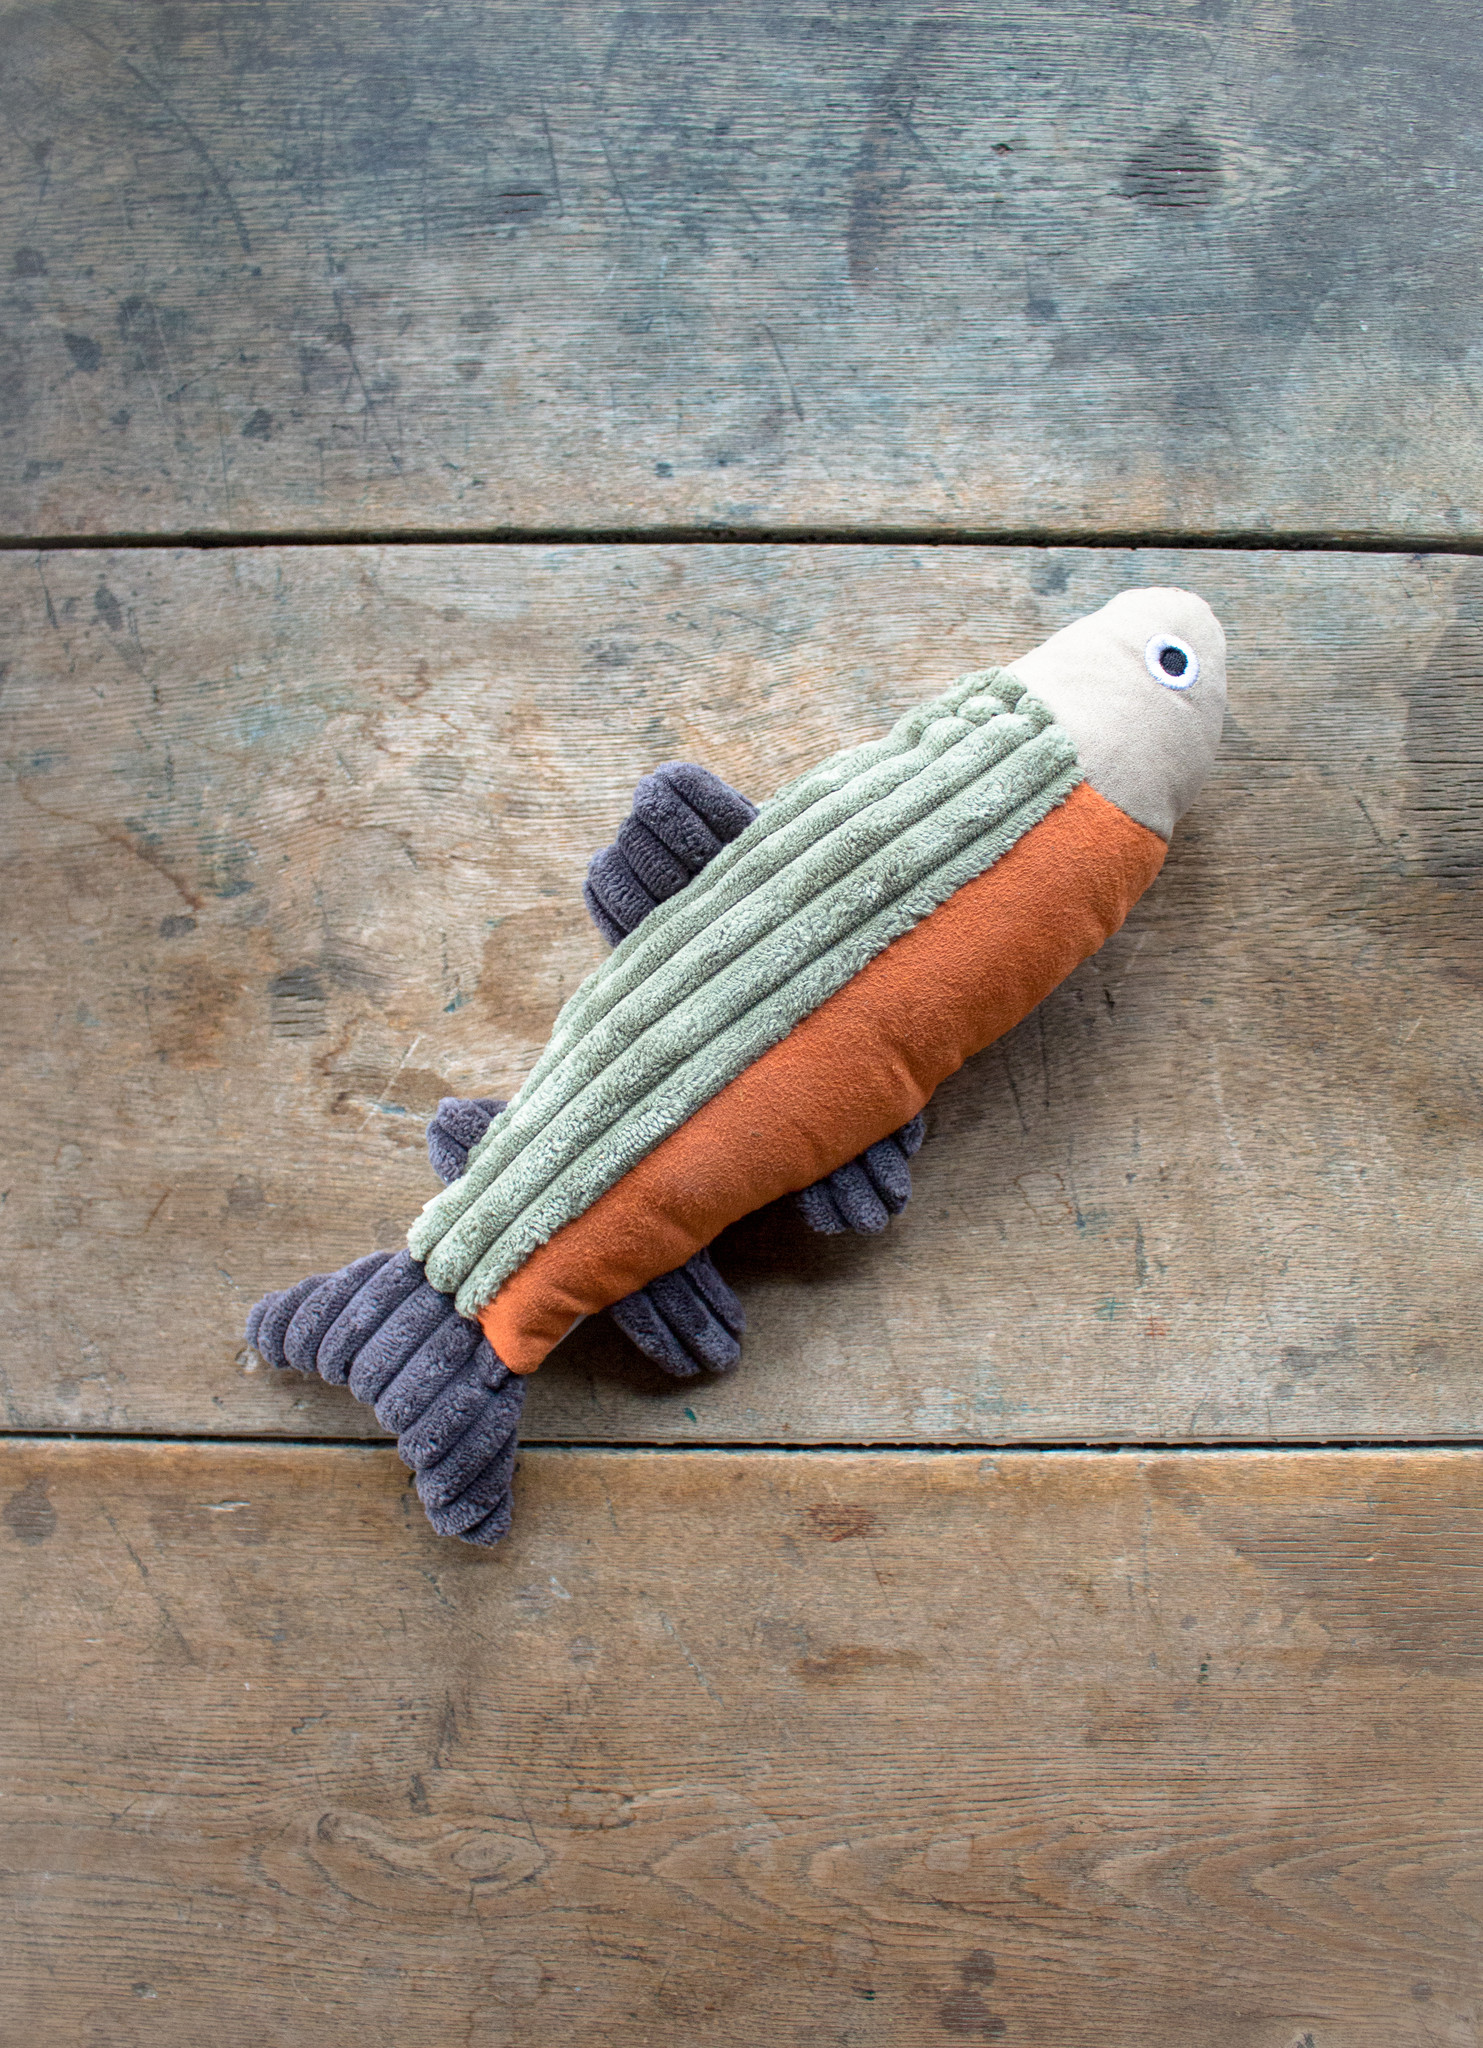 The Birch Store Plush Fish Squeaky Dog Toy